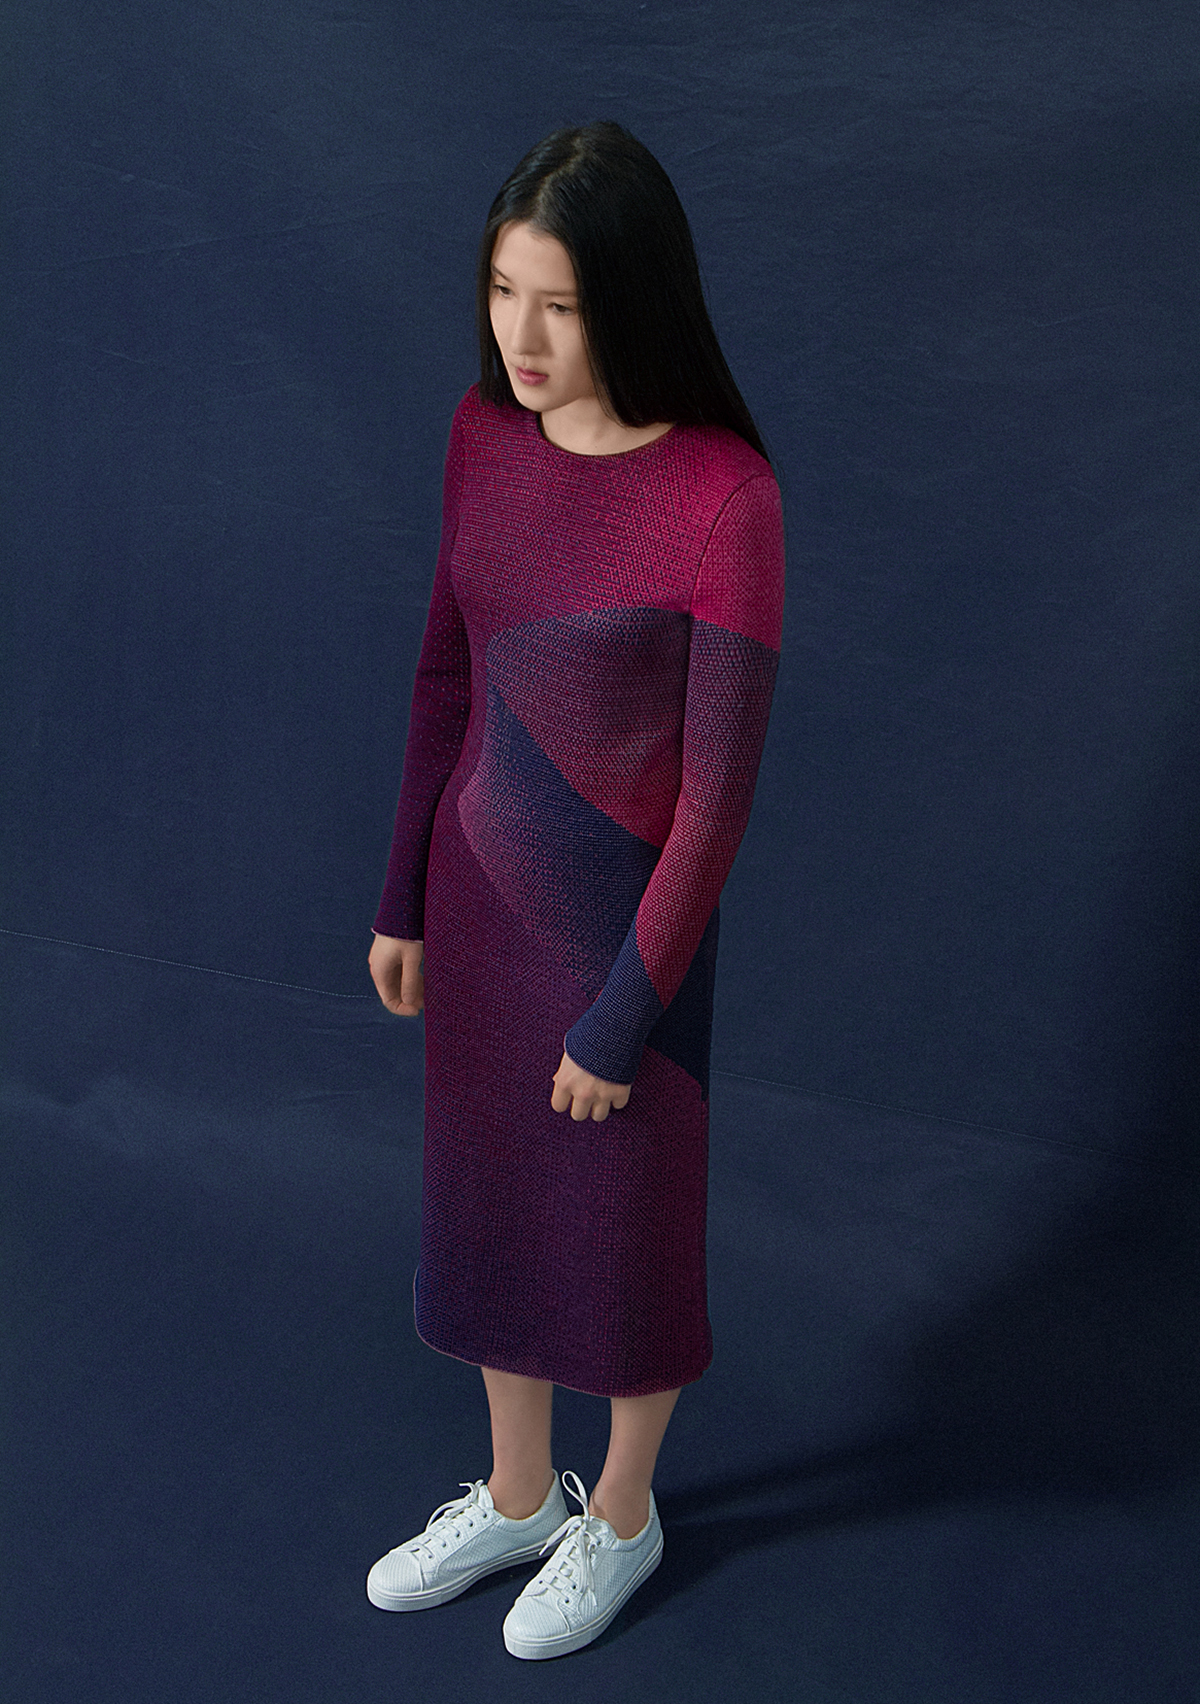 Shoot knitted apparel 01 dress shape